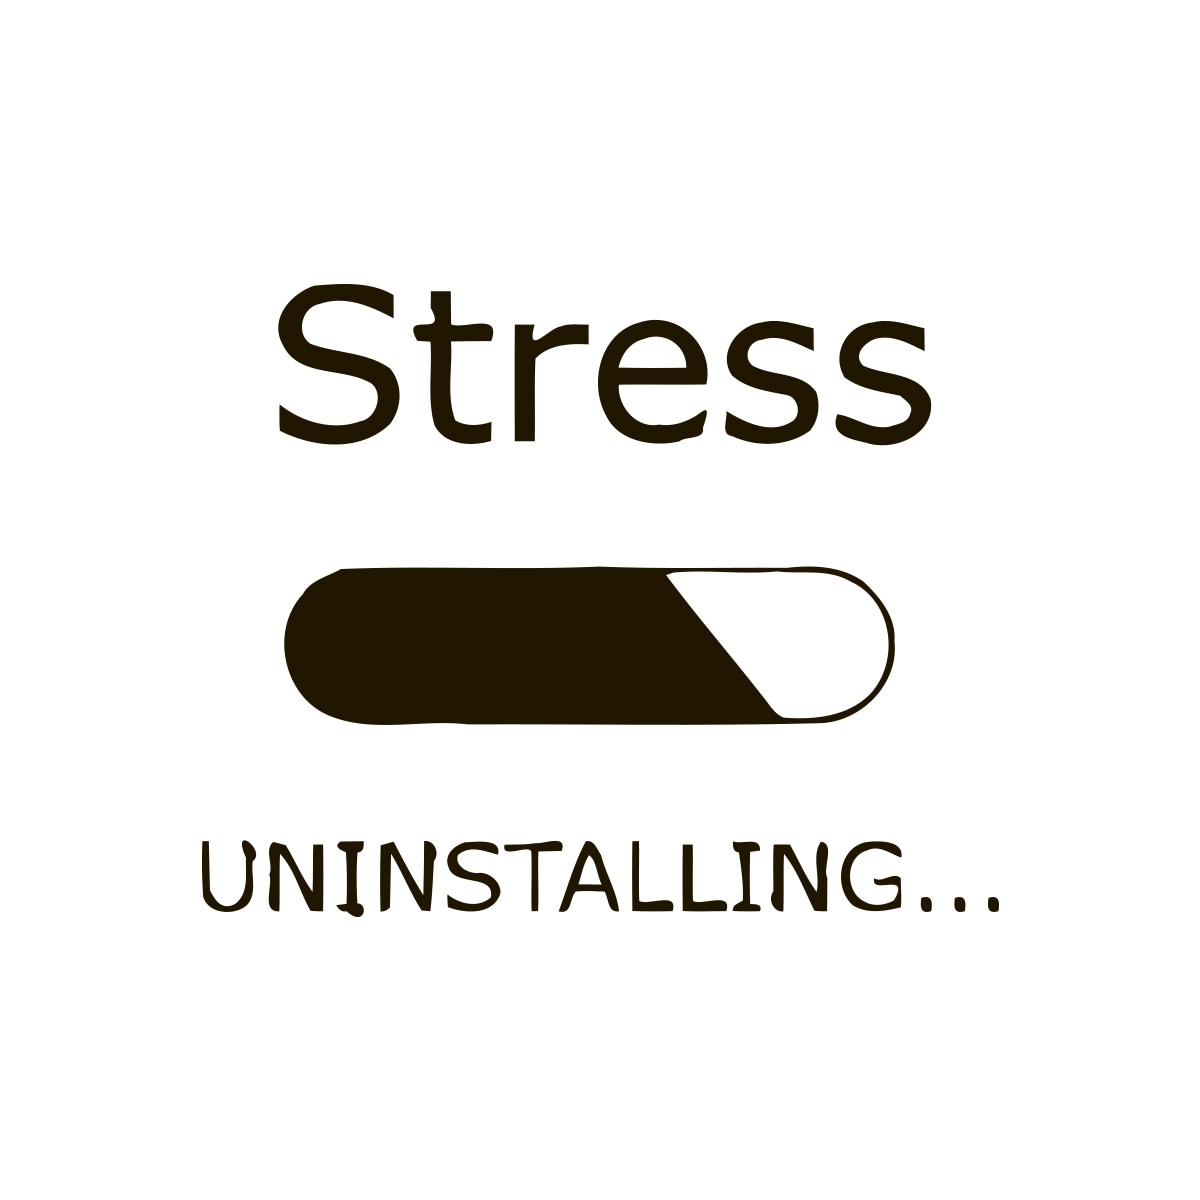 Stress Quote Don't Stress Quote Vinyl Wall Art  Free Shipping On Orders Over